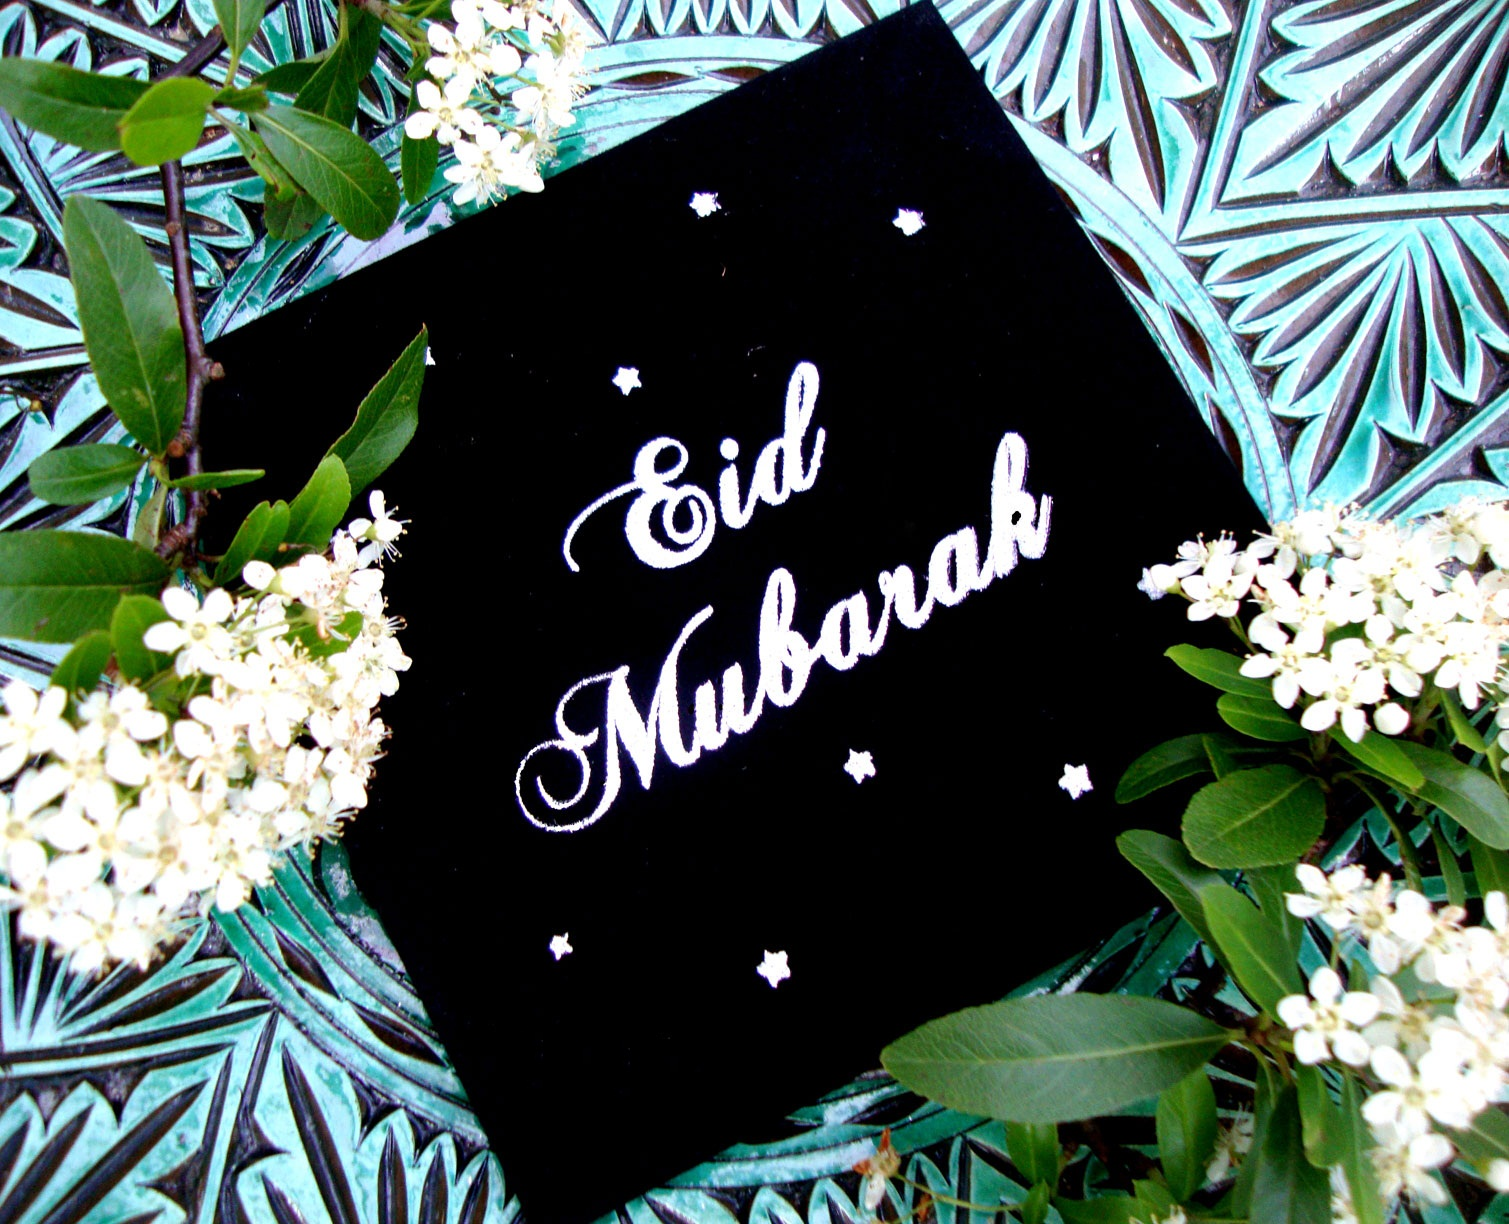 Eid mubarak hd 2013 Lovely Eid Mubarak 2013 Greetings, Walpapers, Posters